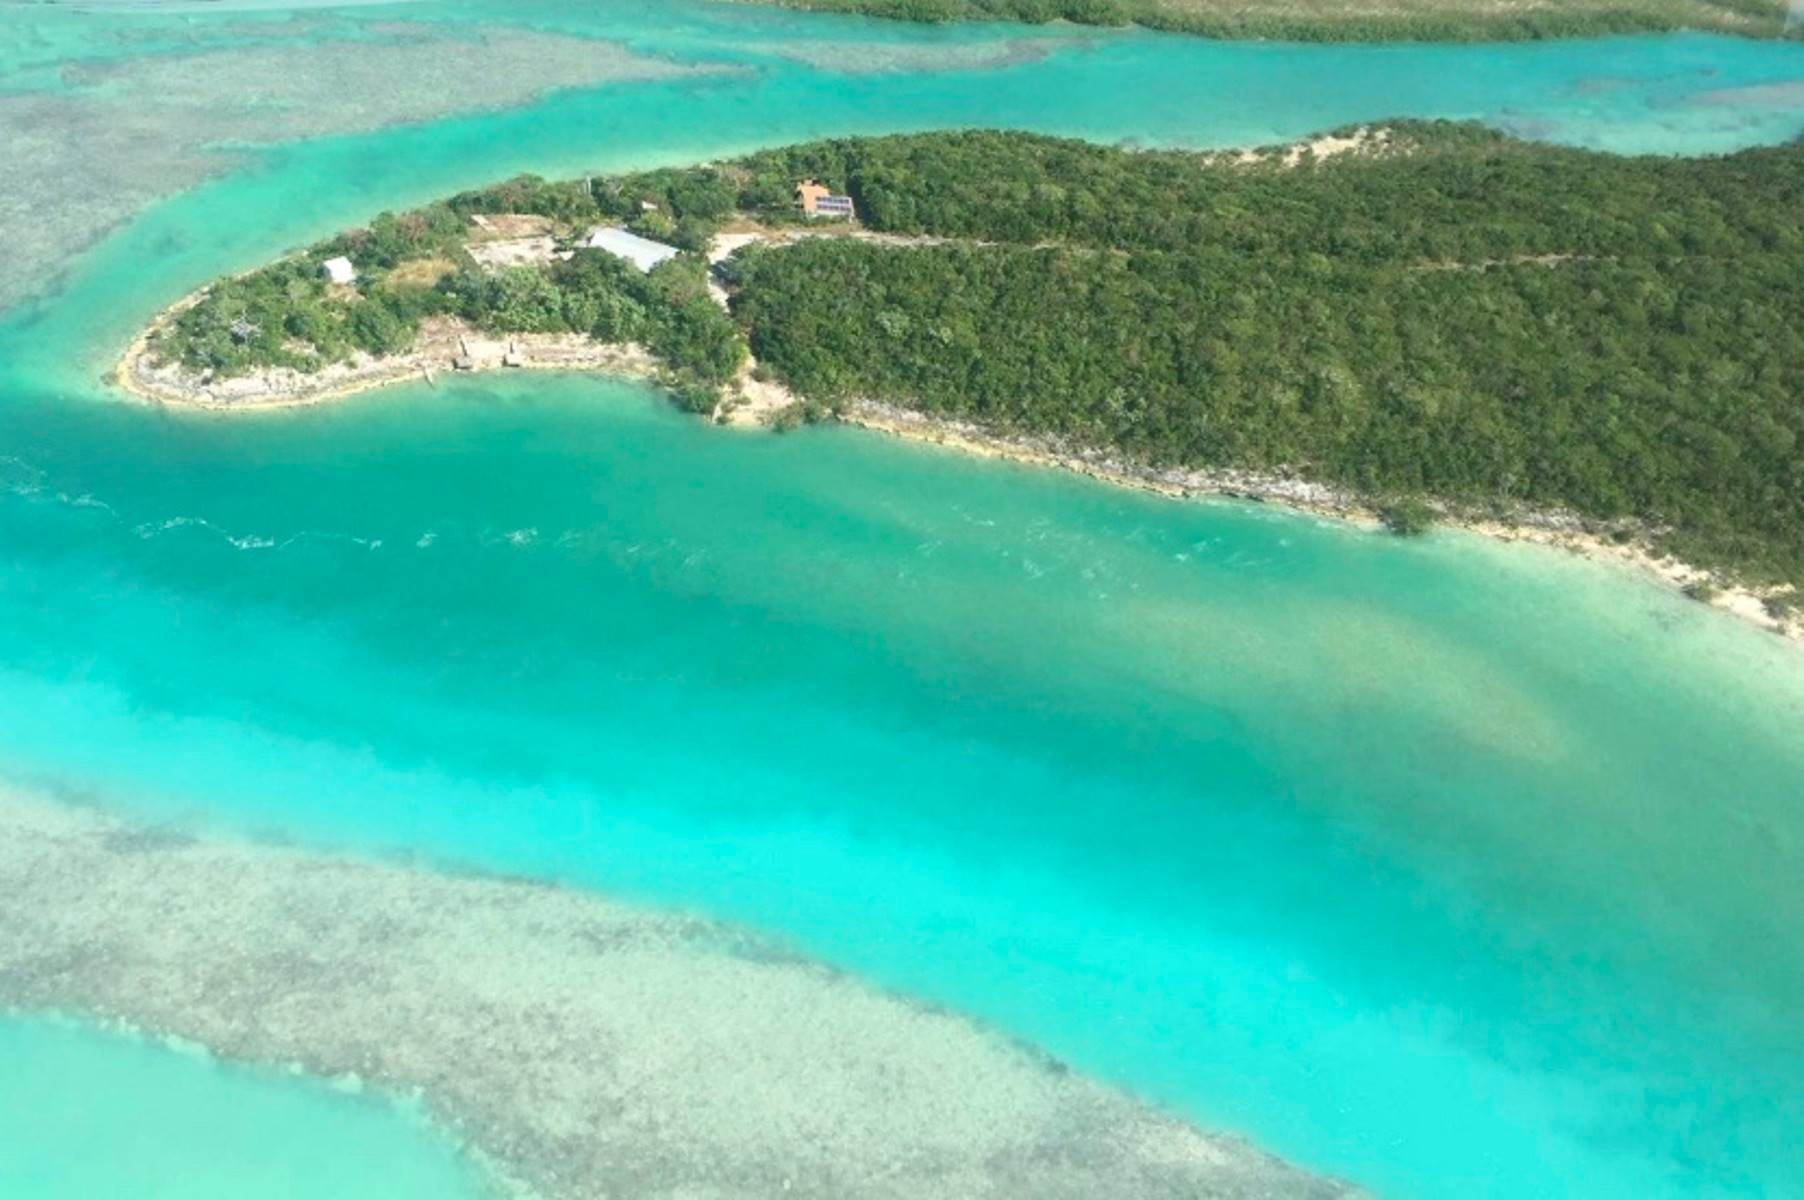 Terreno por un Venta en Private lot at the tip of a peninsula with cottage and docks George Town, Exuma, Bahamas